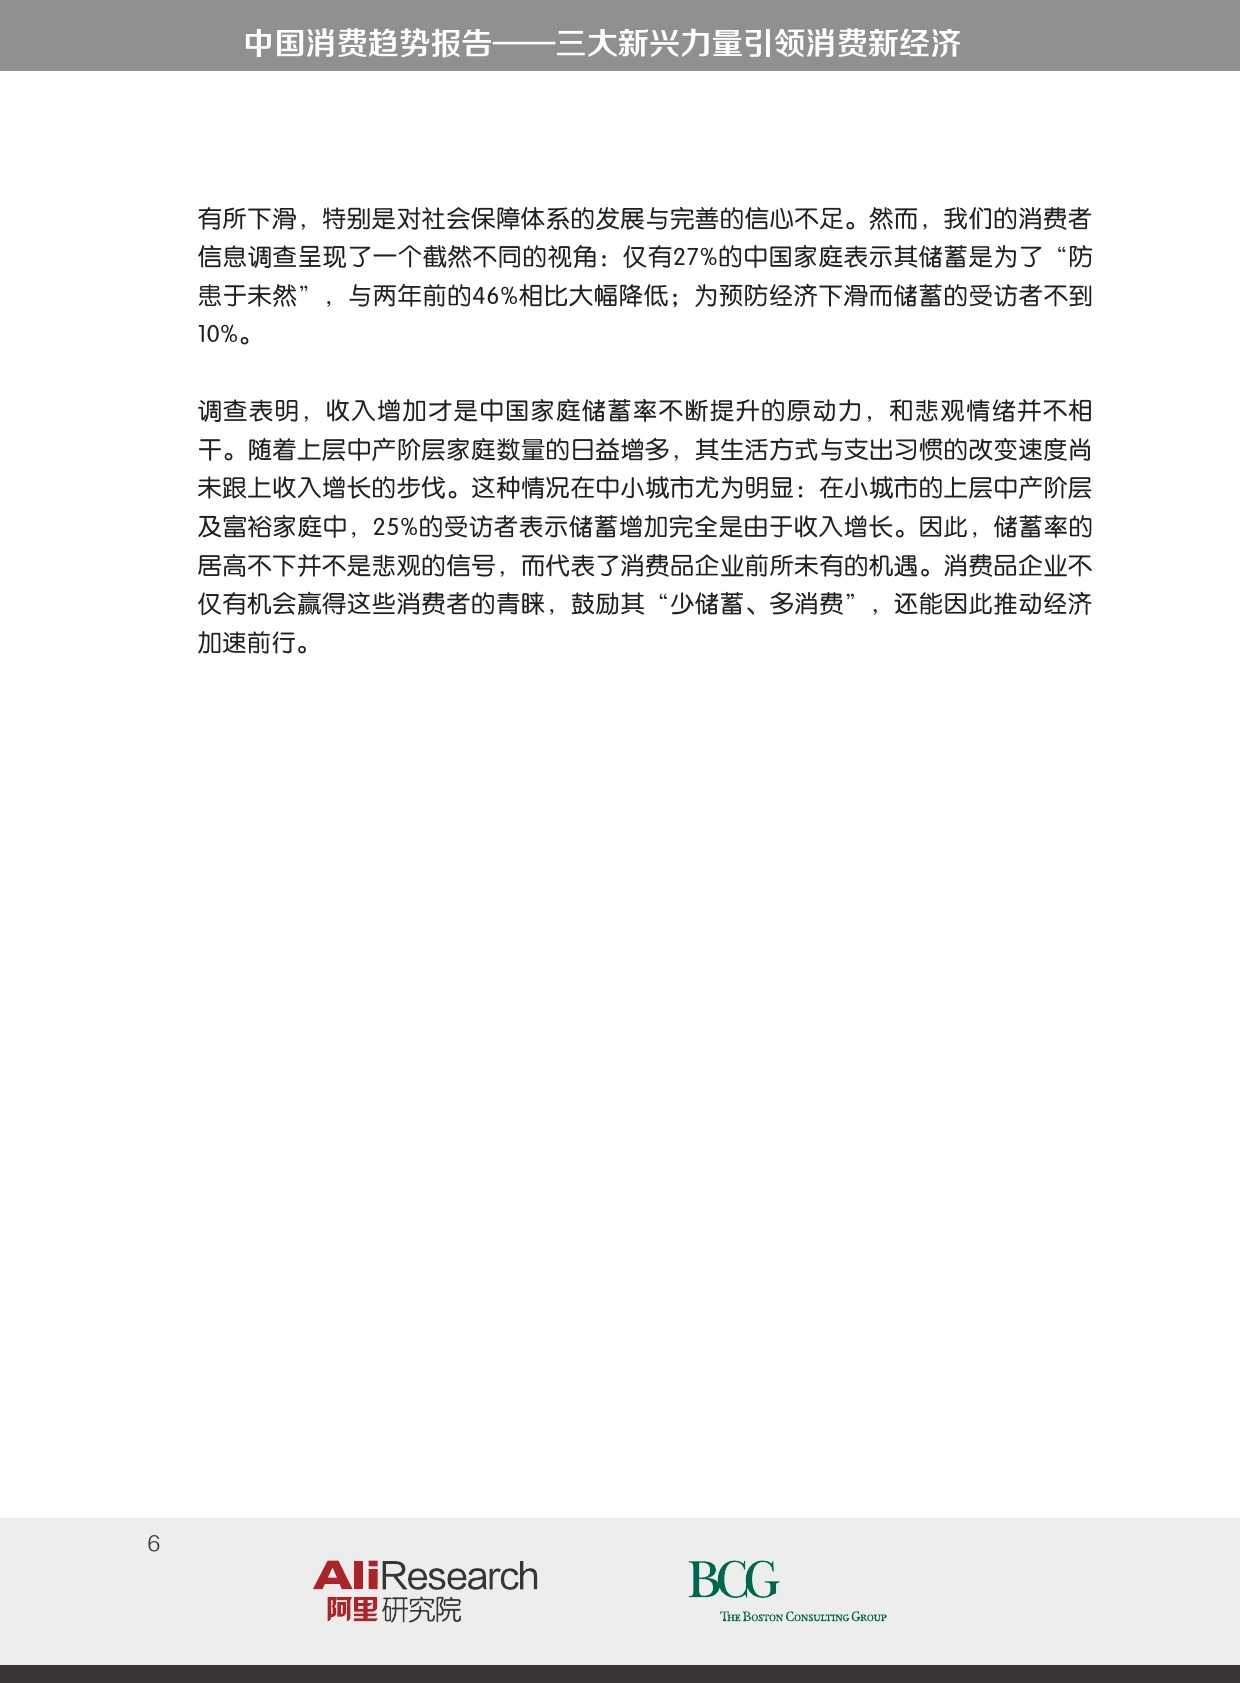 BCG_The_New_China_Playbook_Dec_2015_CHN_000006